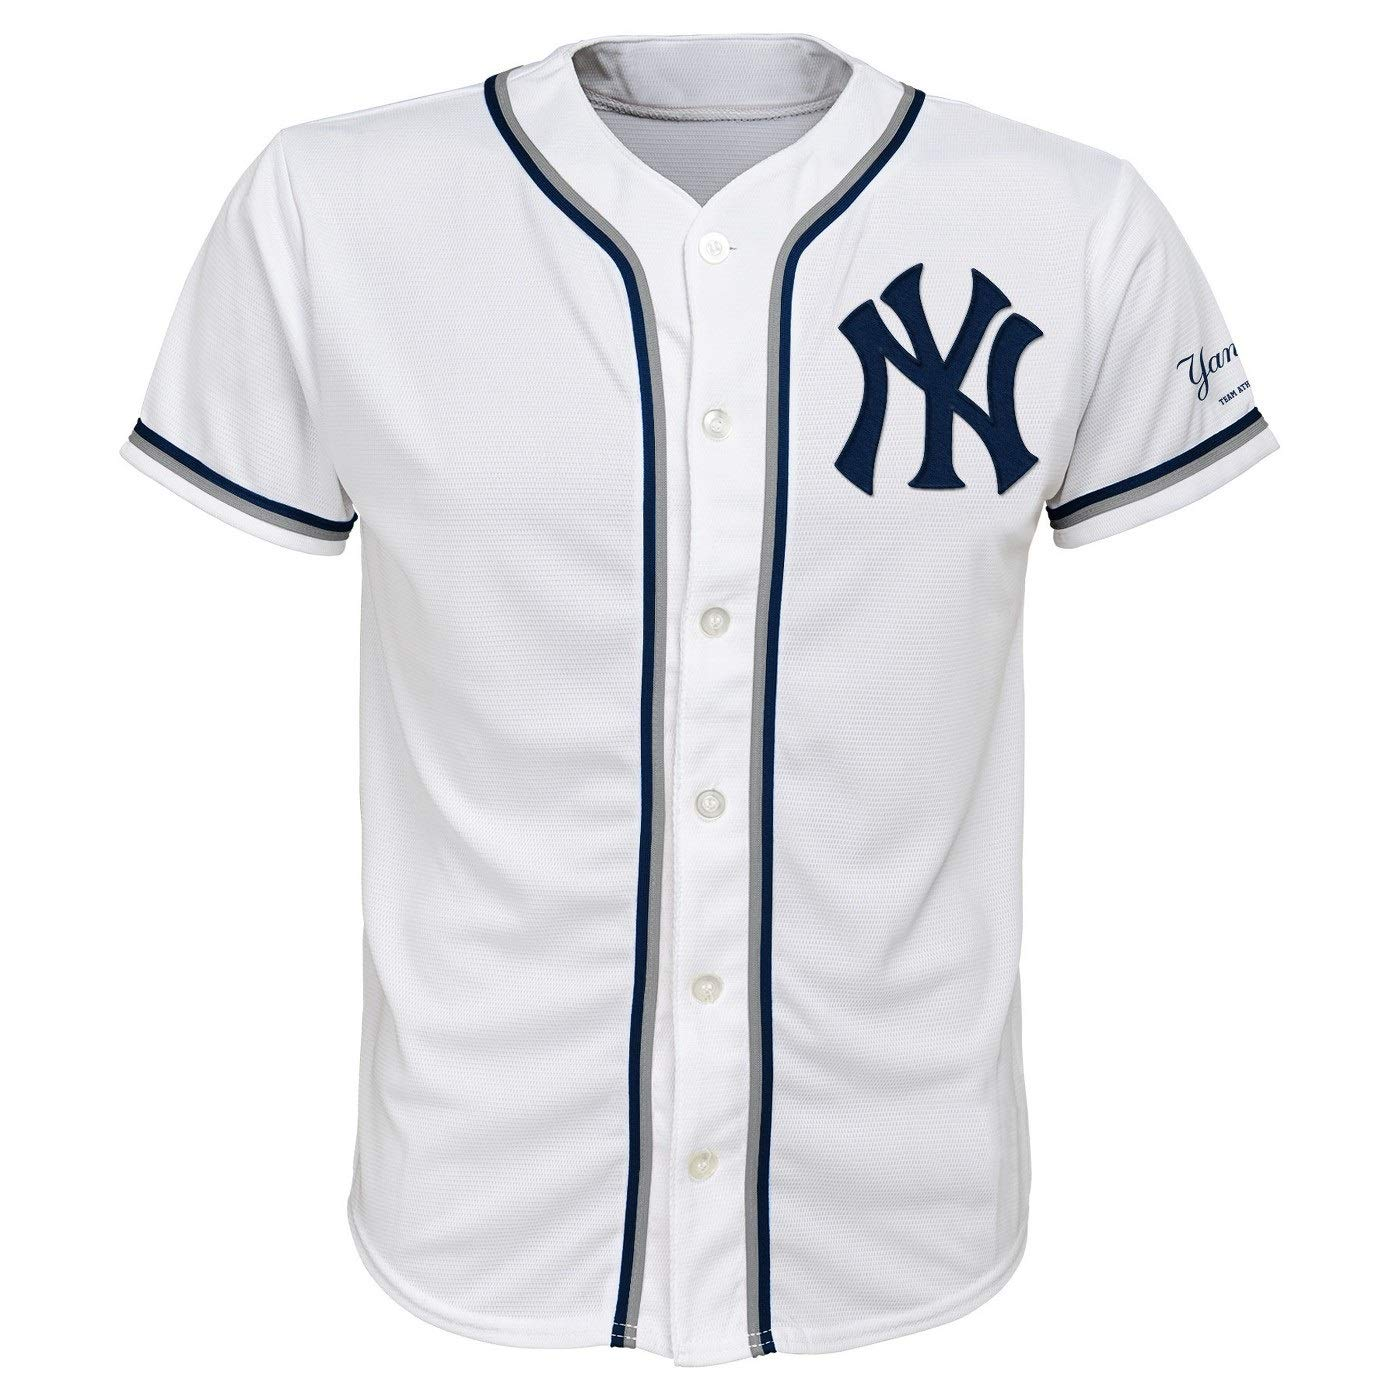 24b2f836 Amazon.com: Outerstuff New York Yankees White Youth Team Apparel ...